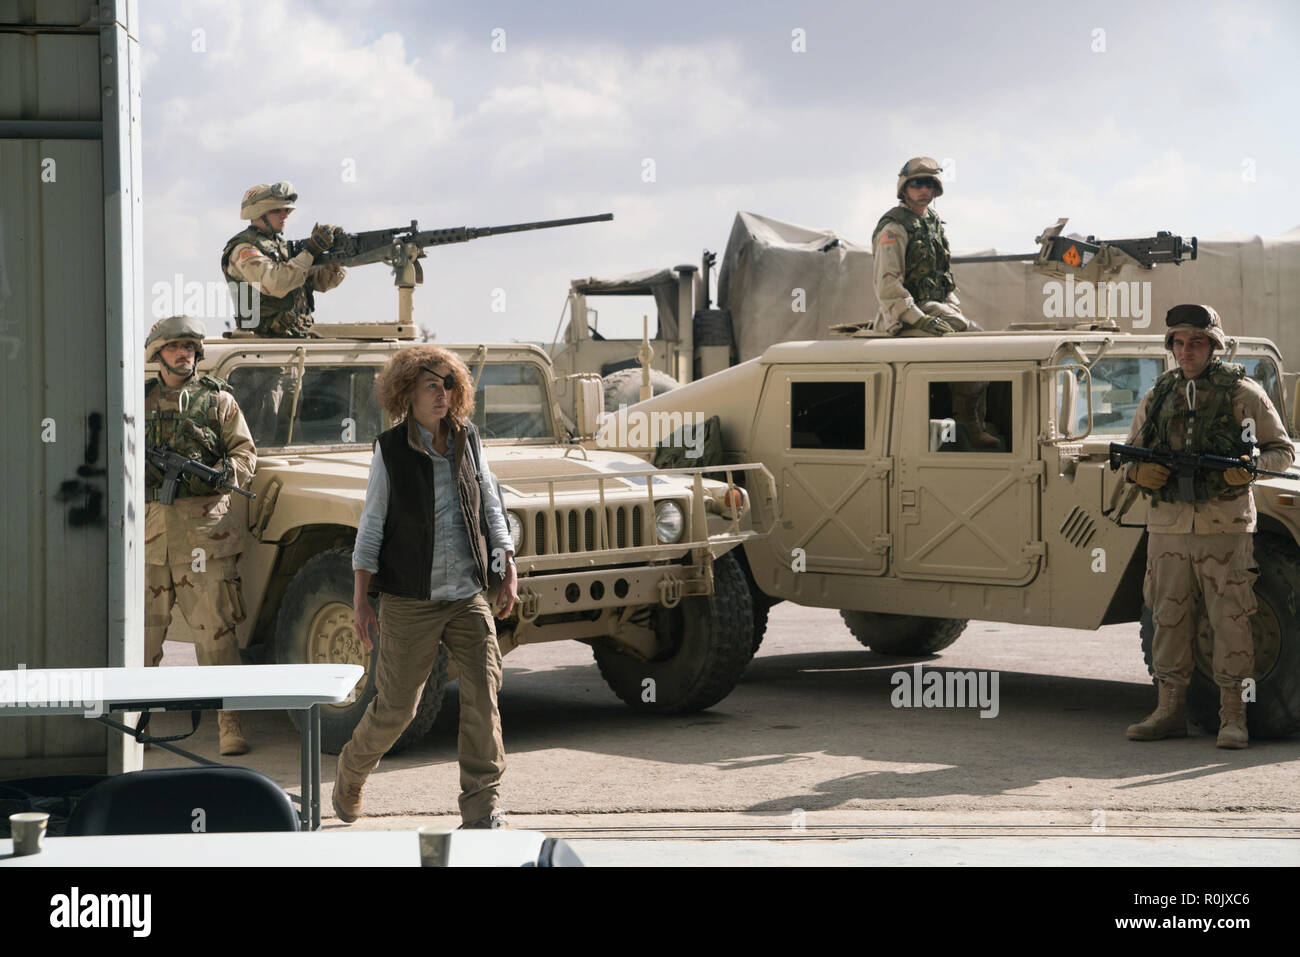 Rosamund Pike 'A Private War' (2018) (Credit Photo: Aviron Pictures / The Hollywood Archive) - Stock Image